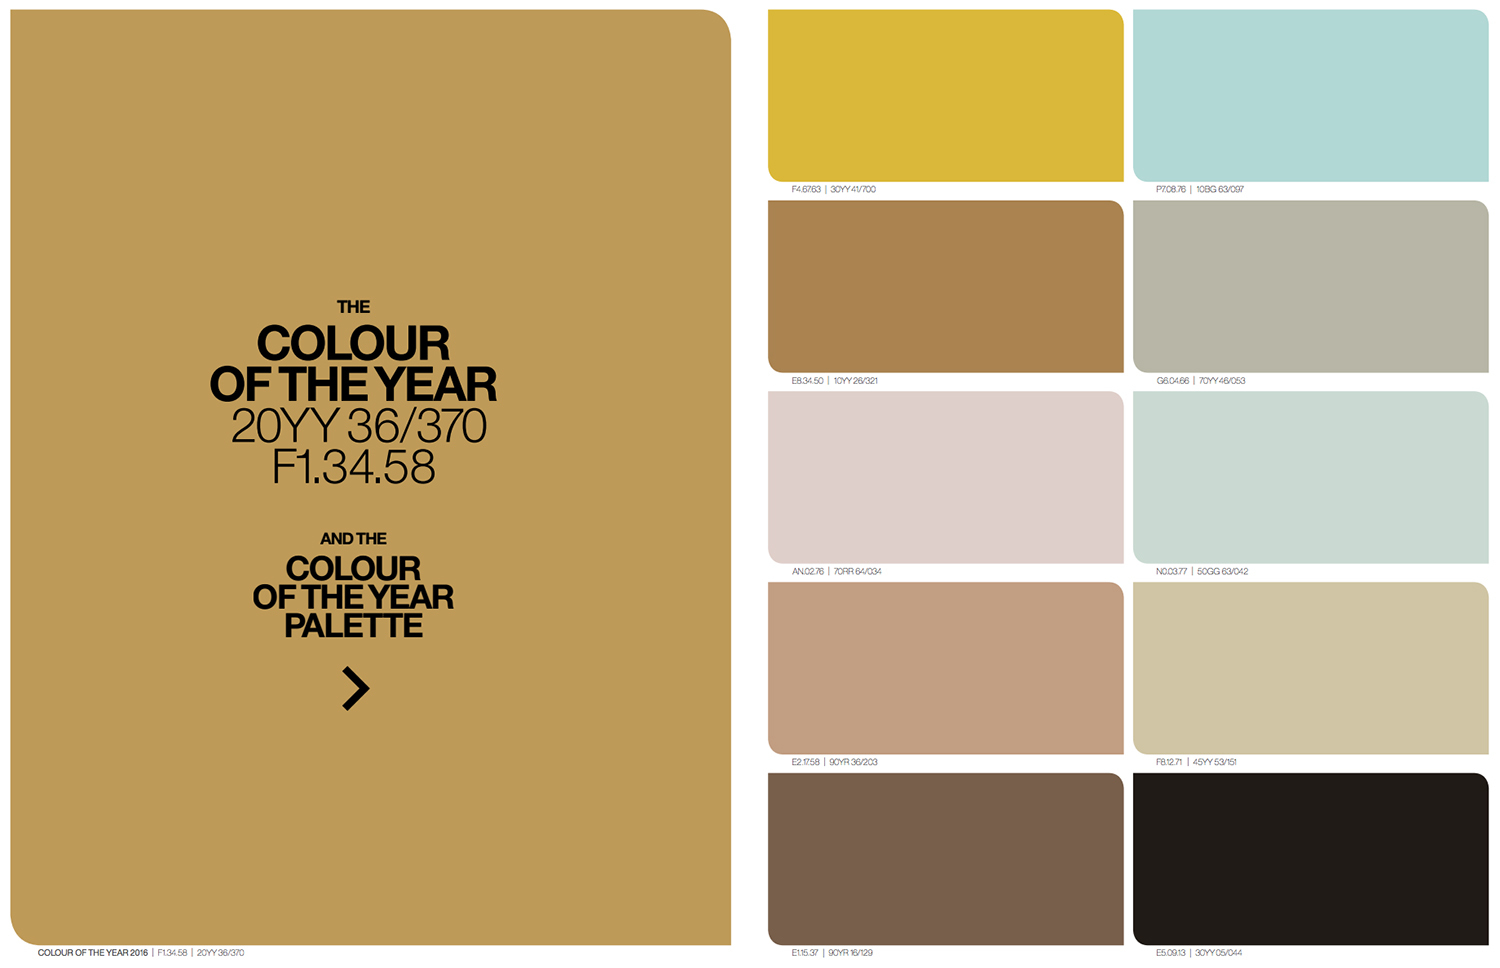 Colour of the year 2016 Färgkarta